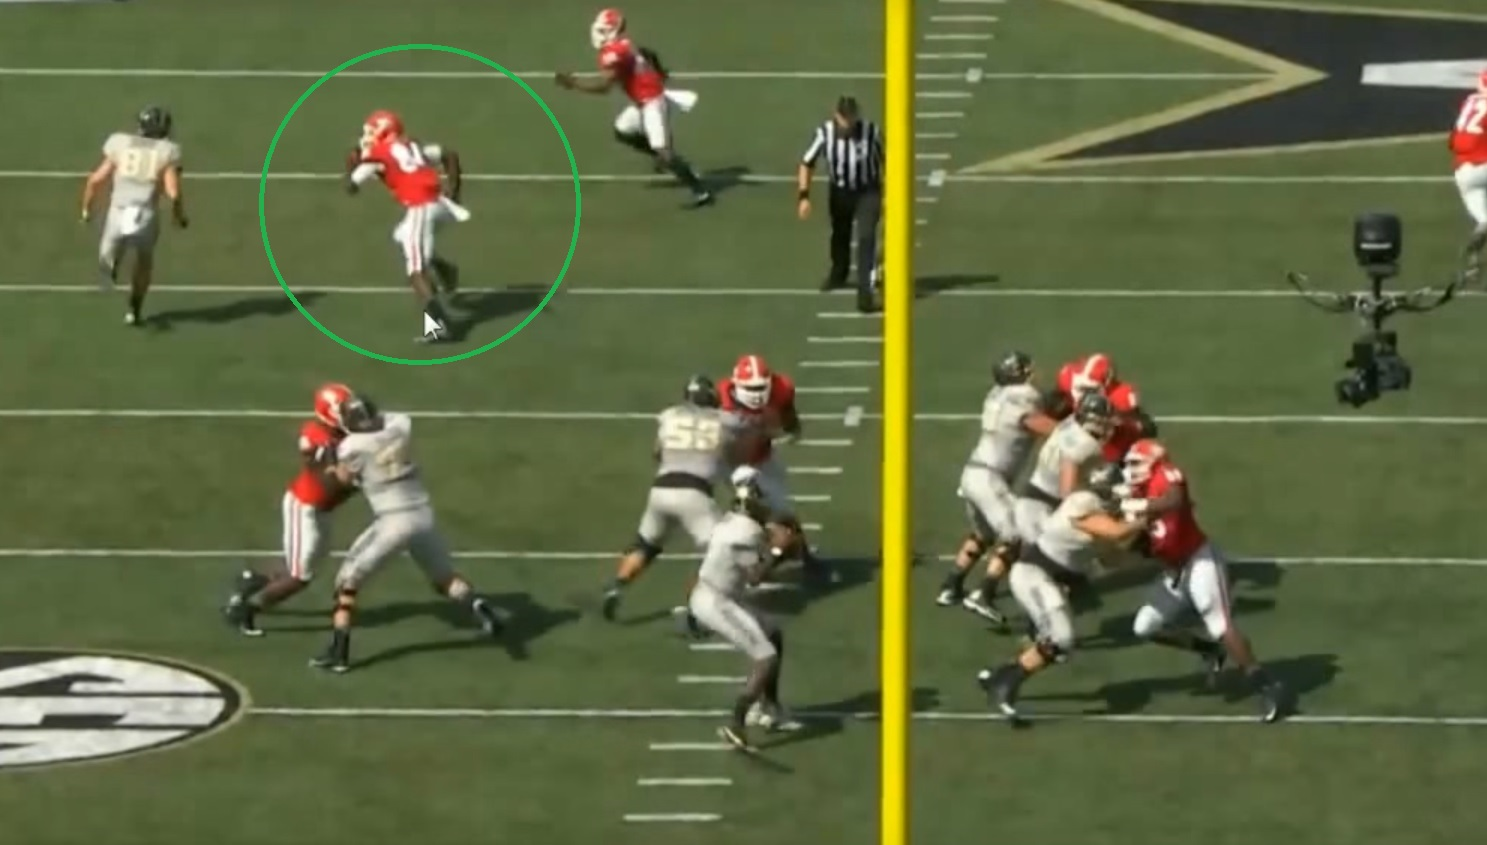 RSP Film Room No.83: LB Leonard Floyd